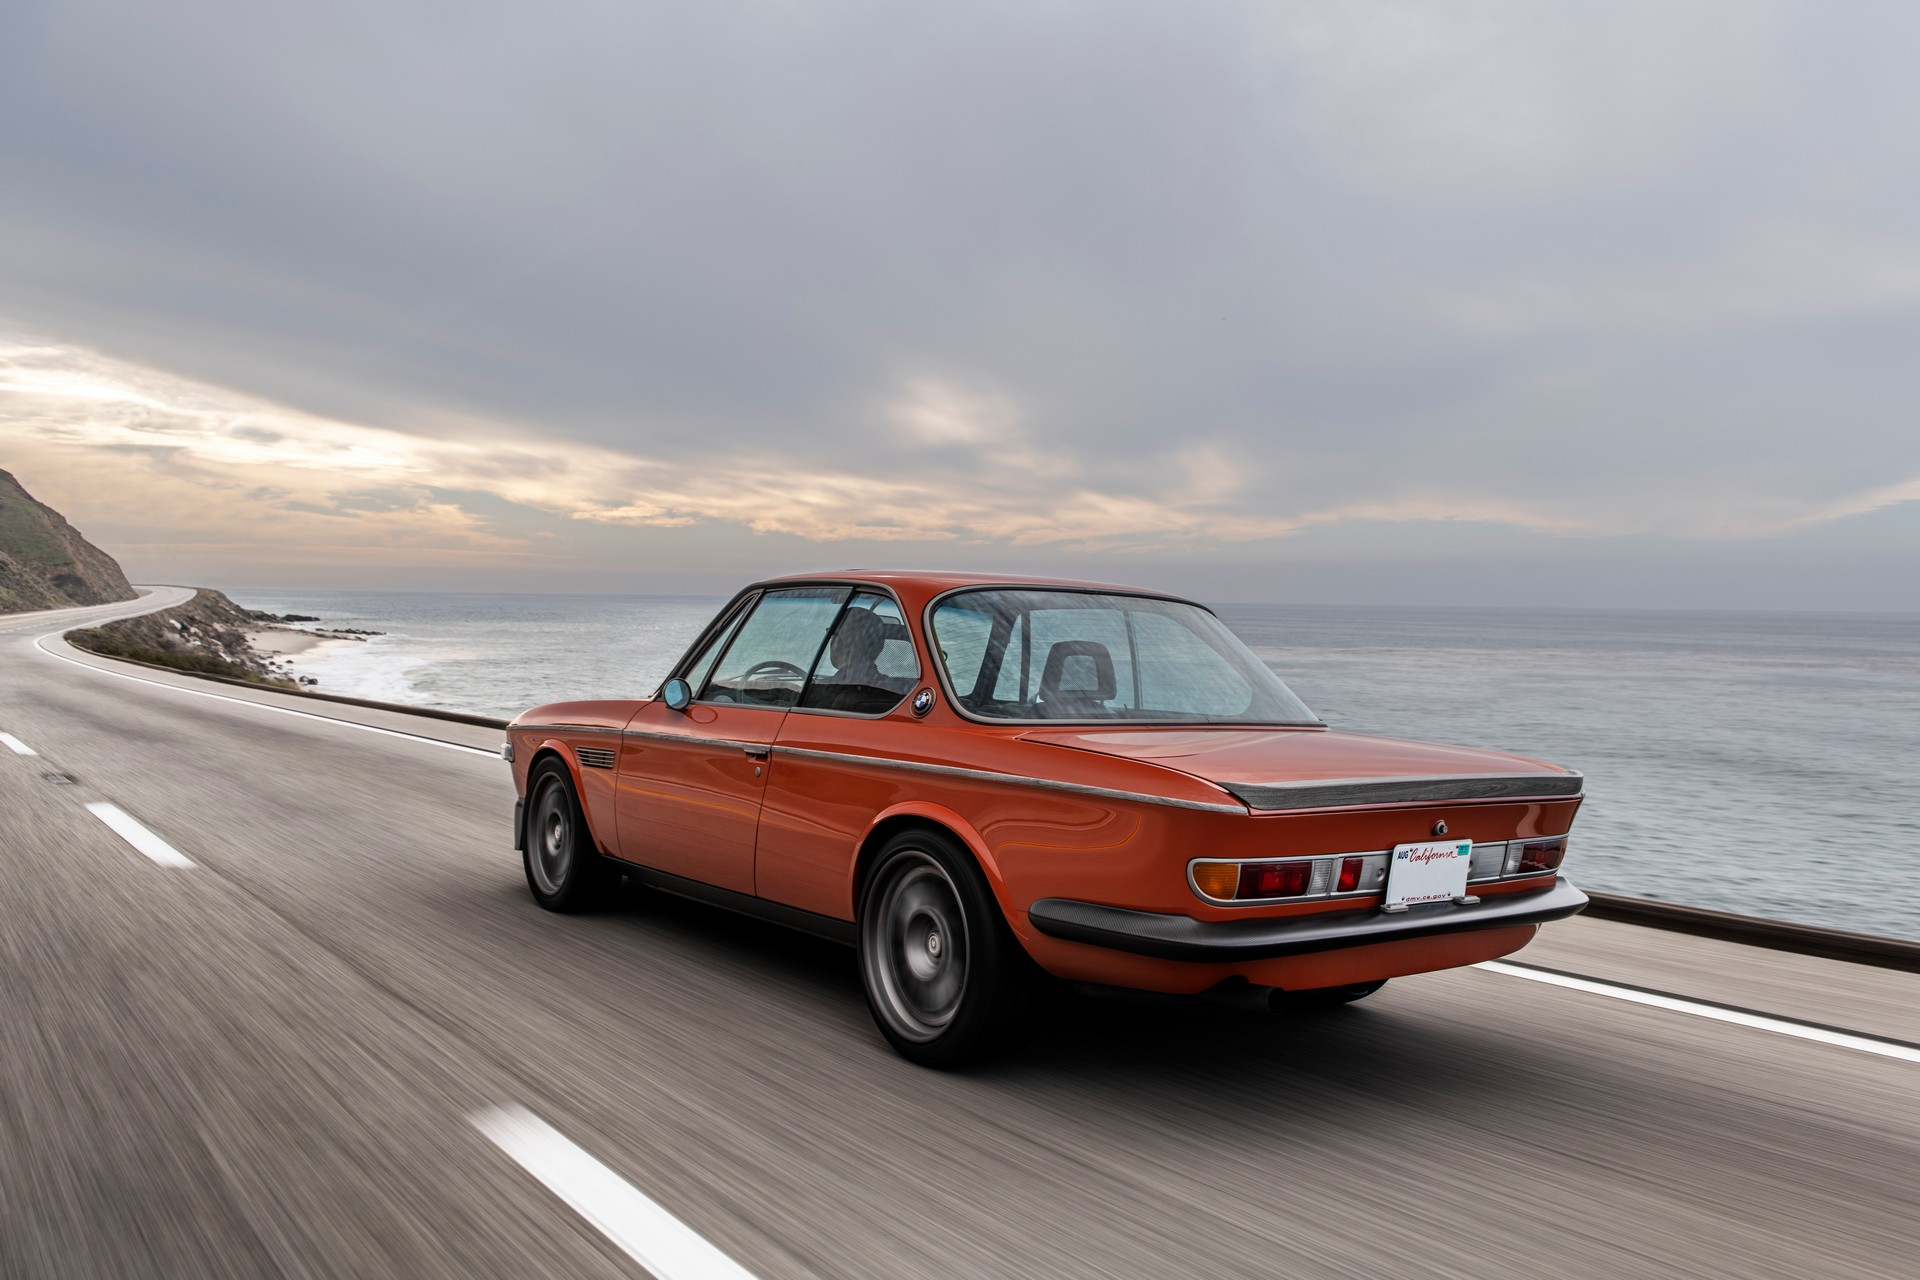 SPEEDKORE-1974-BMW-3.0-CS-5